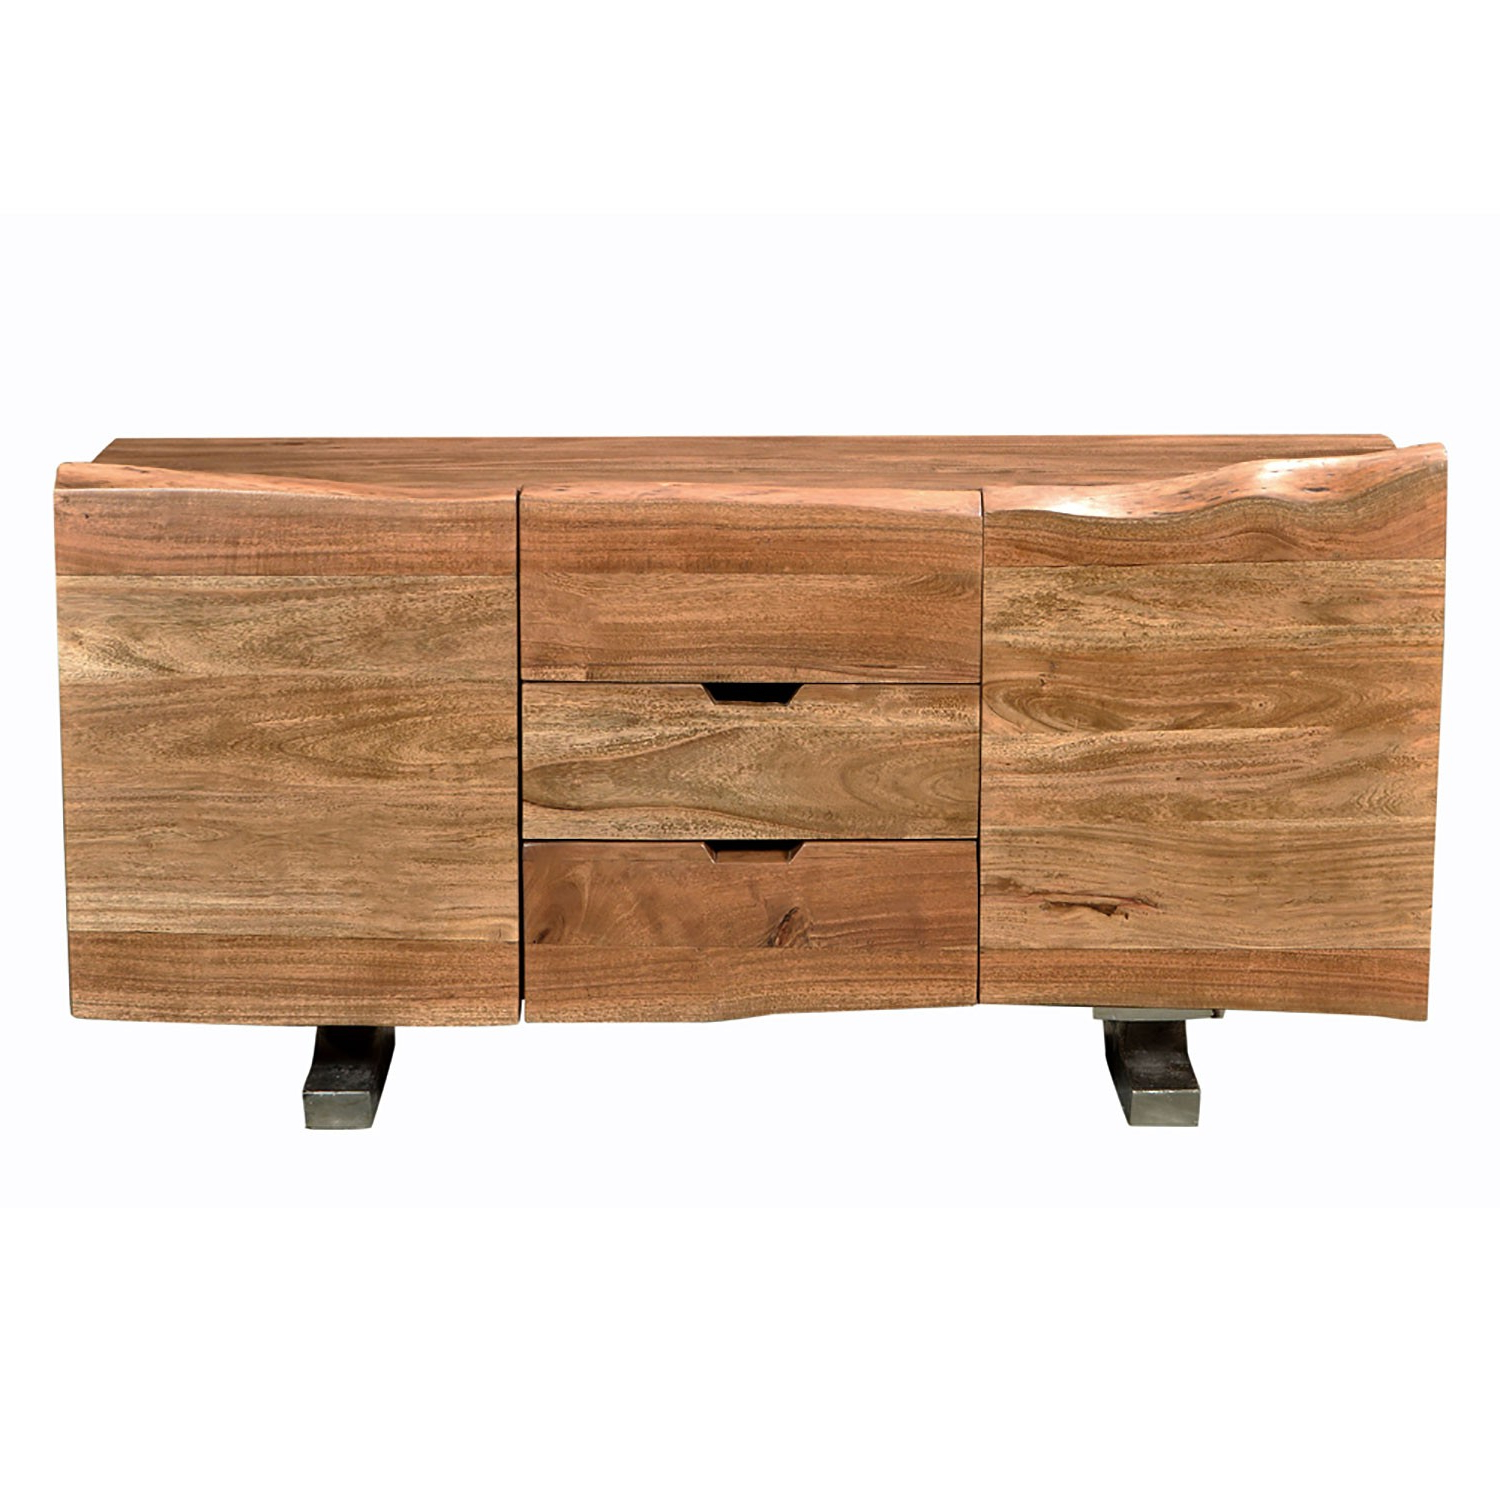 Recent Acacia Wood 4 Door Sideboards Intended For Earth Collection Buffet 60*18*28, Acacia Wood W/ Iron Legs On Raw (Gallery 14 of 20)